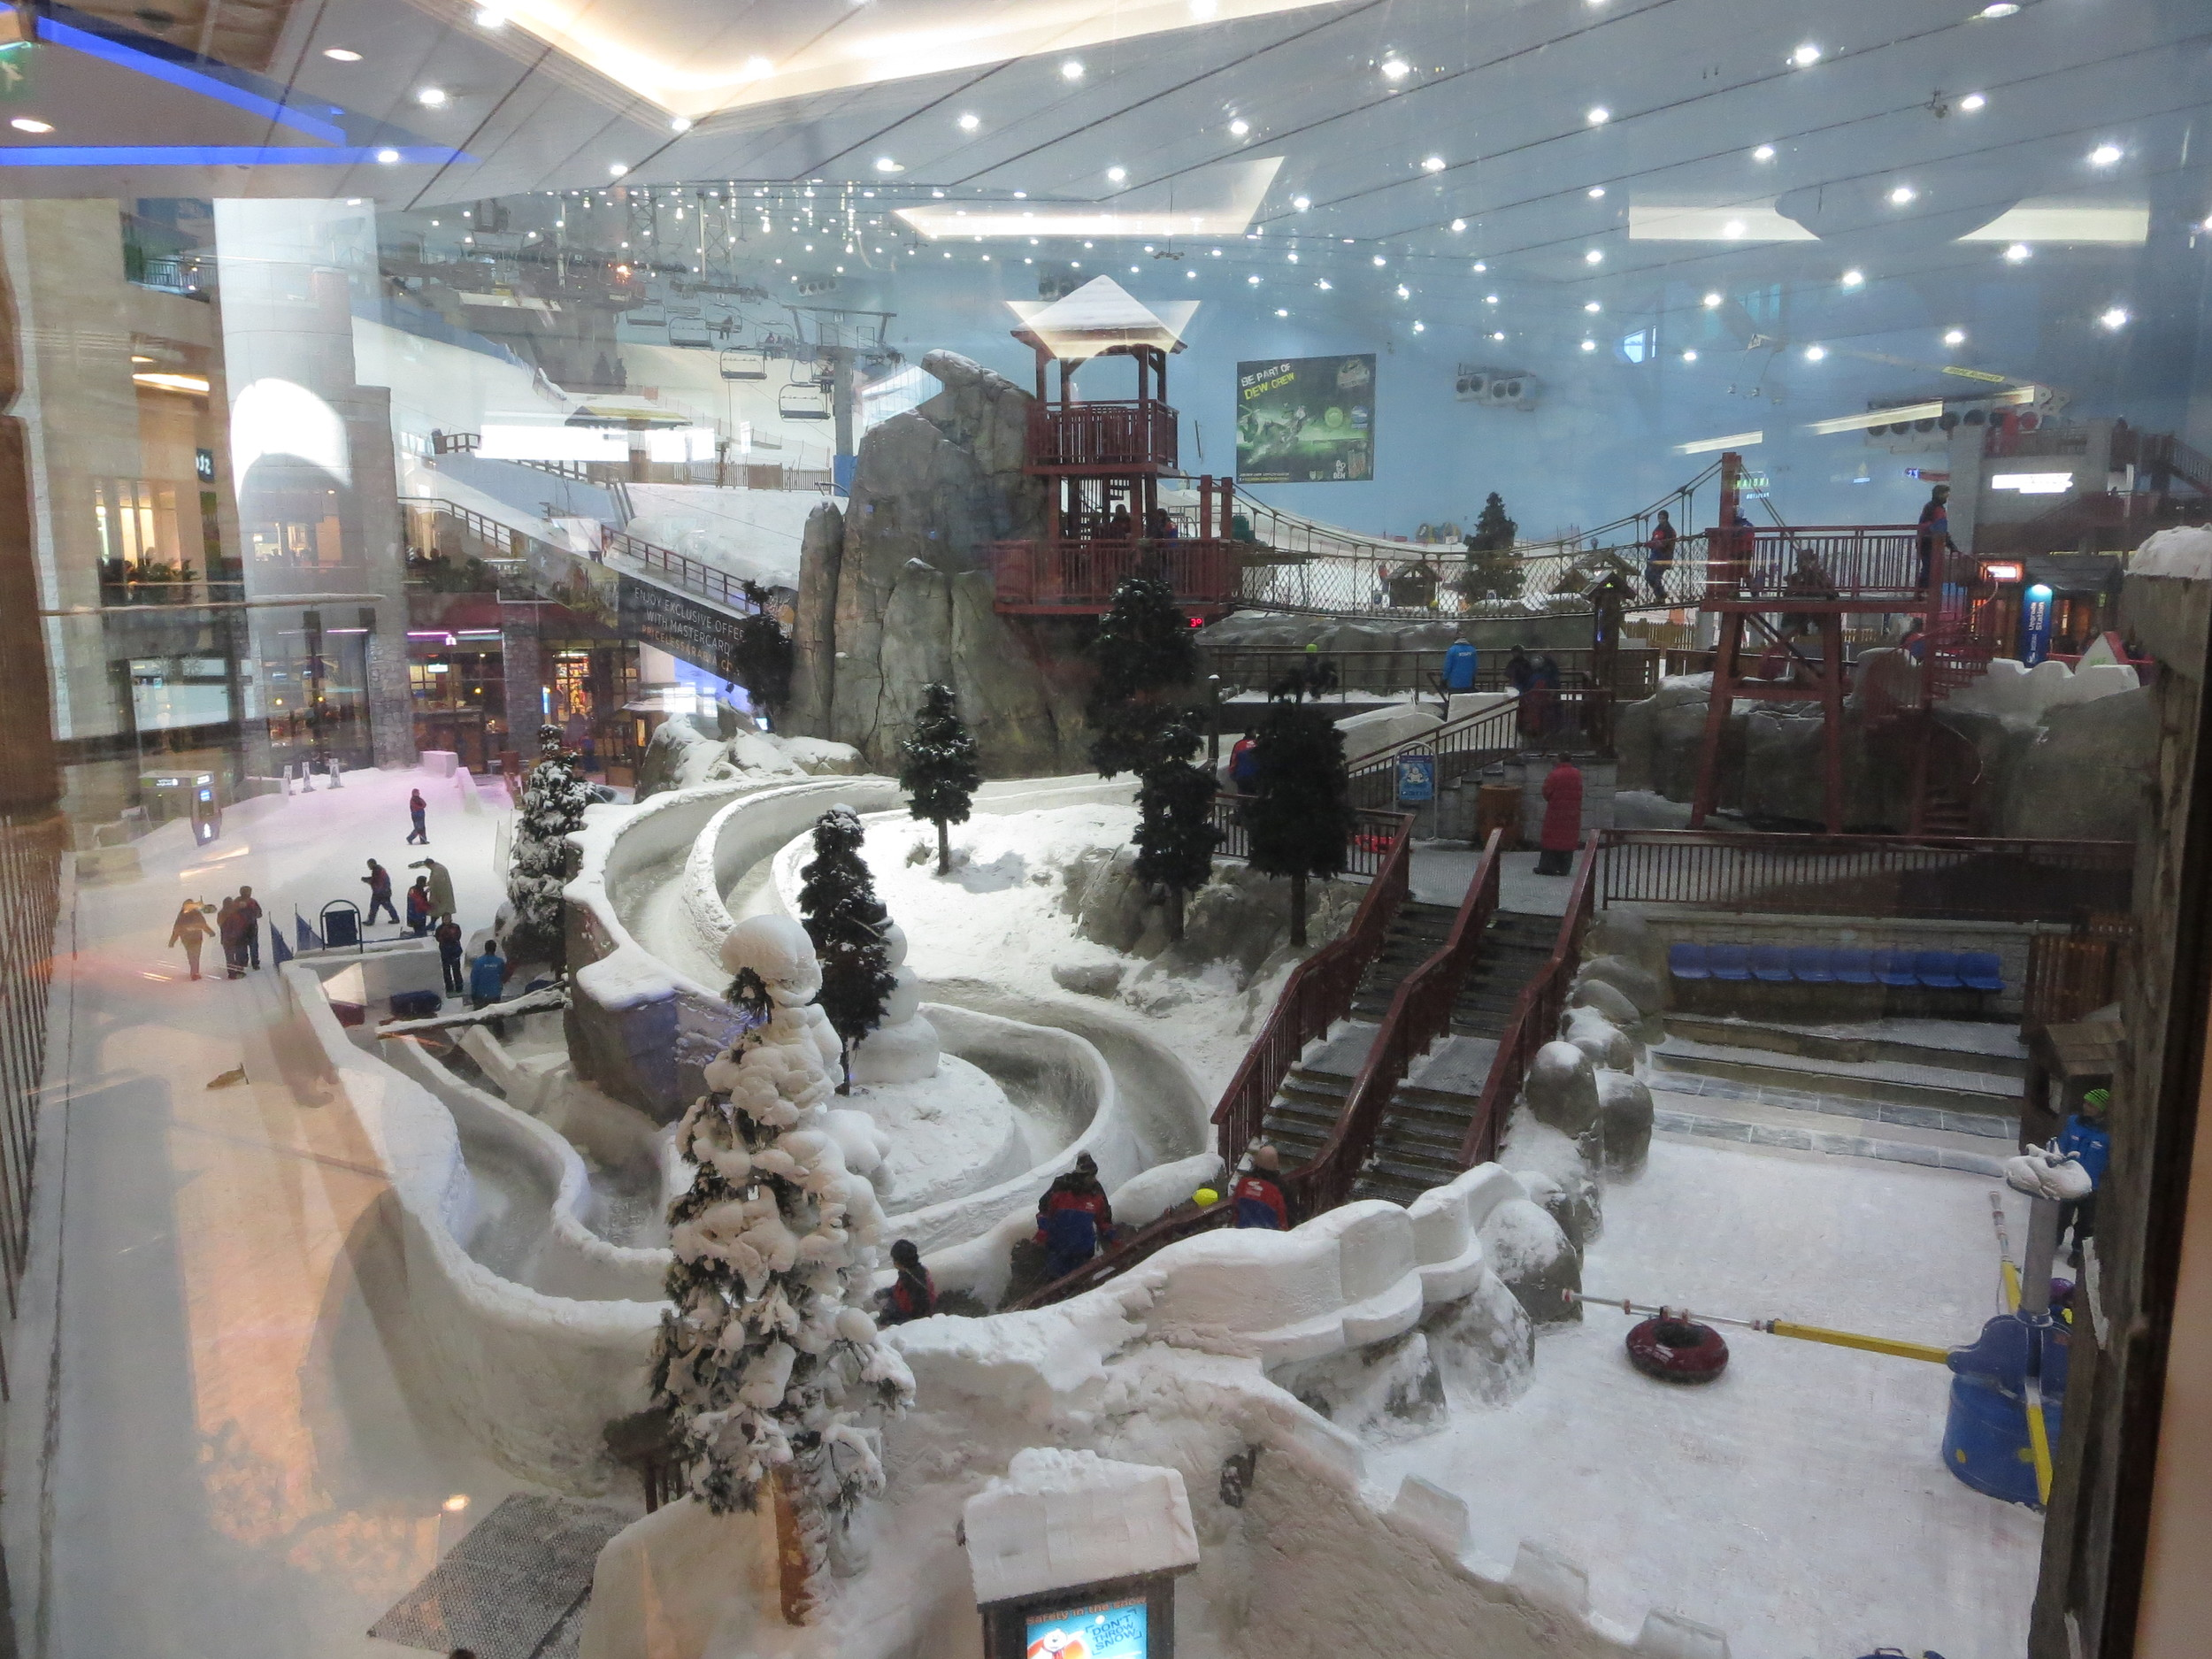 Inside ski area - seen from the streets of a mall